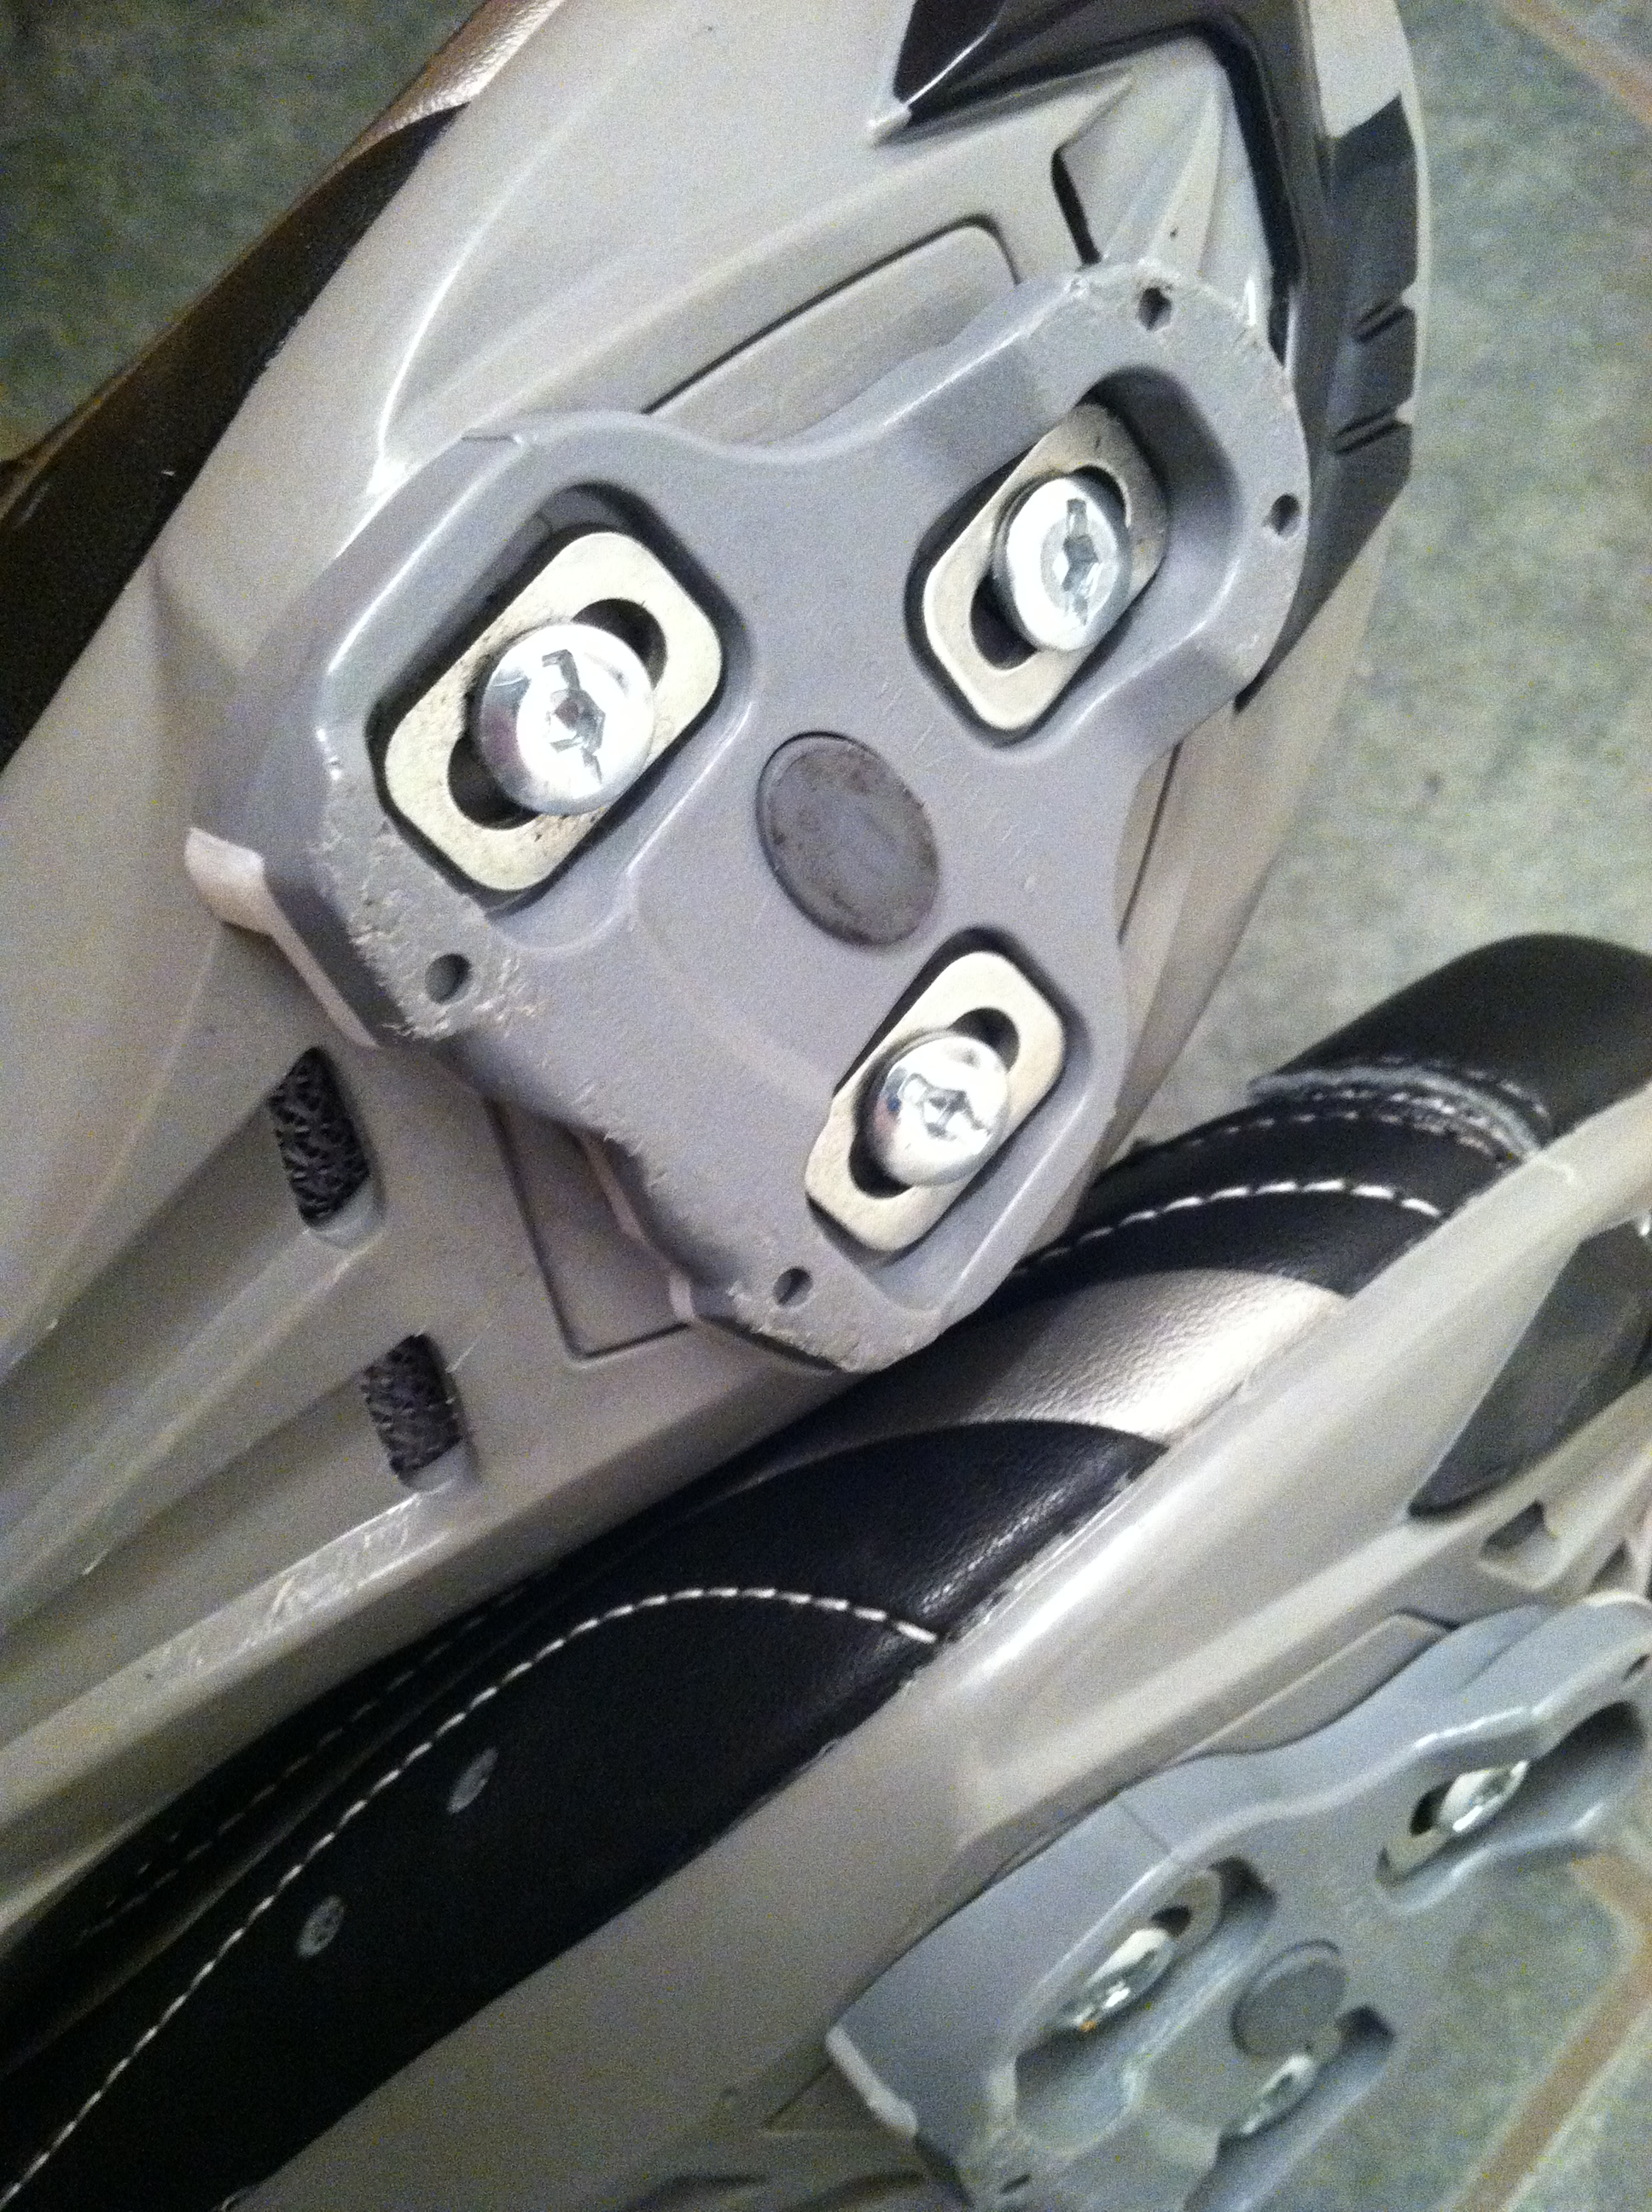 Bottom of a cycle shoe -  clips onto the pedals.